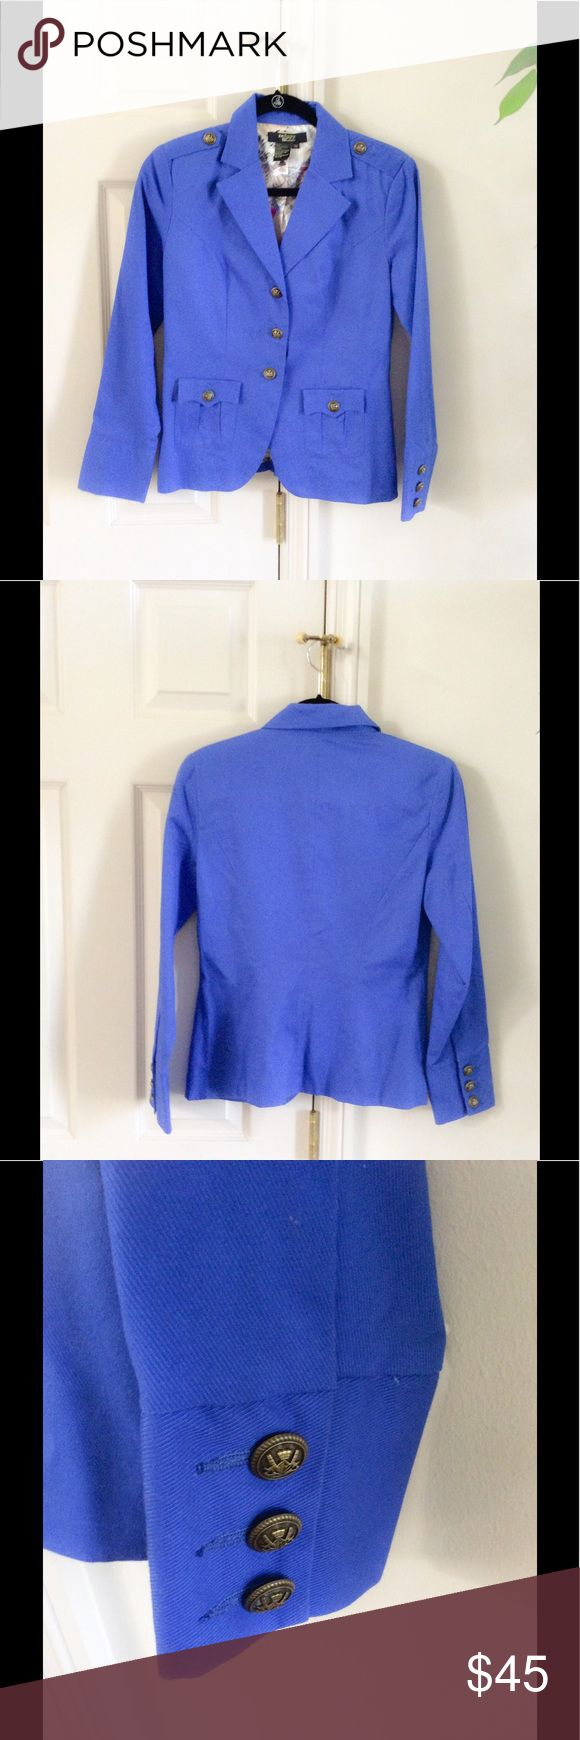 Twiggy London Blazer EUC military style royal blue blazer with button cuff detail. Twiggy Jackets & Coats Blazers